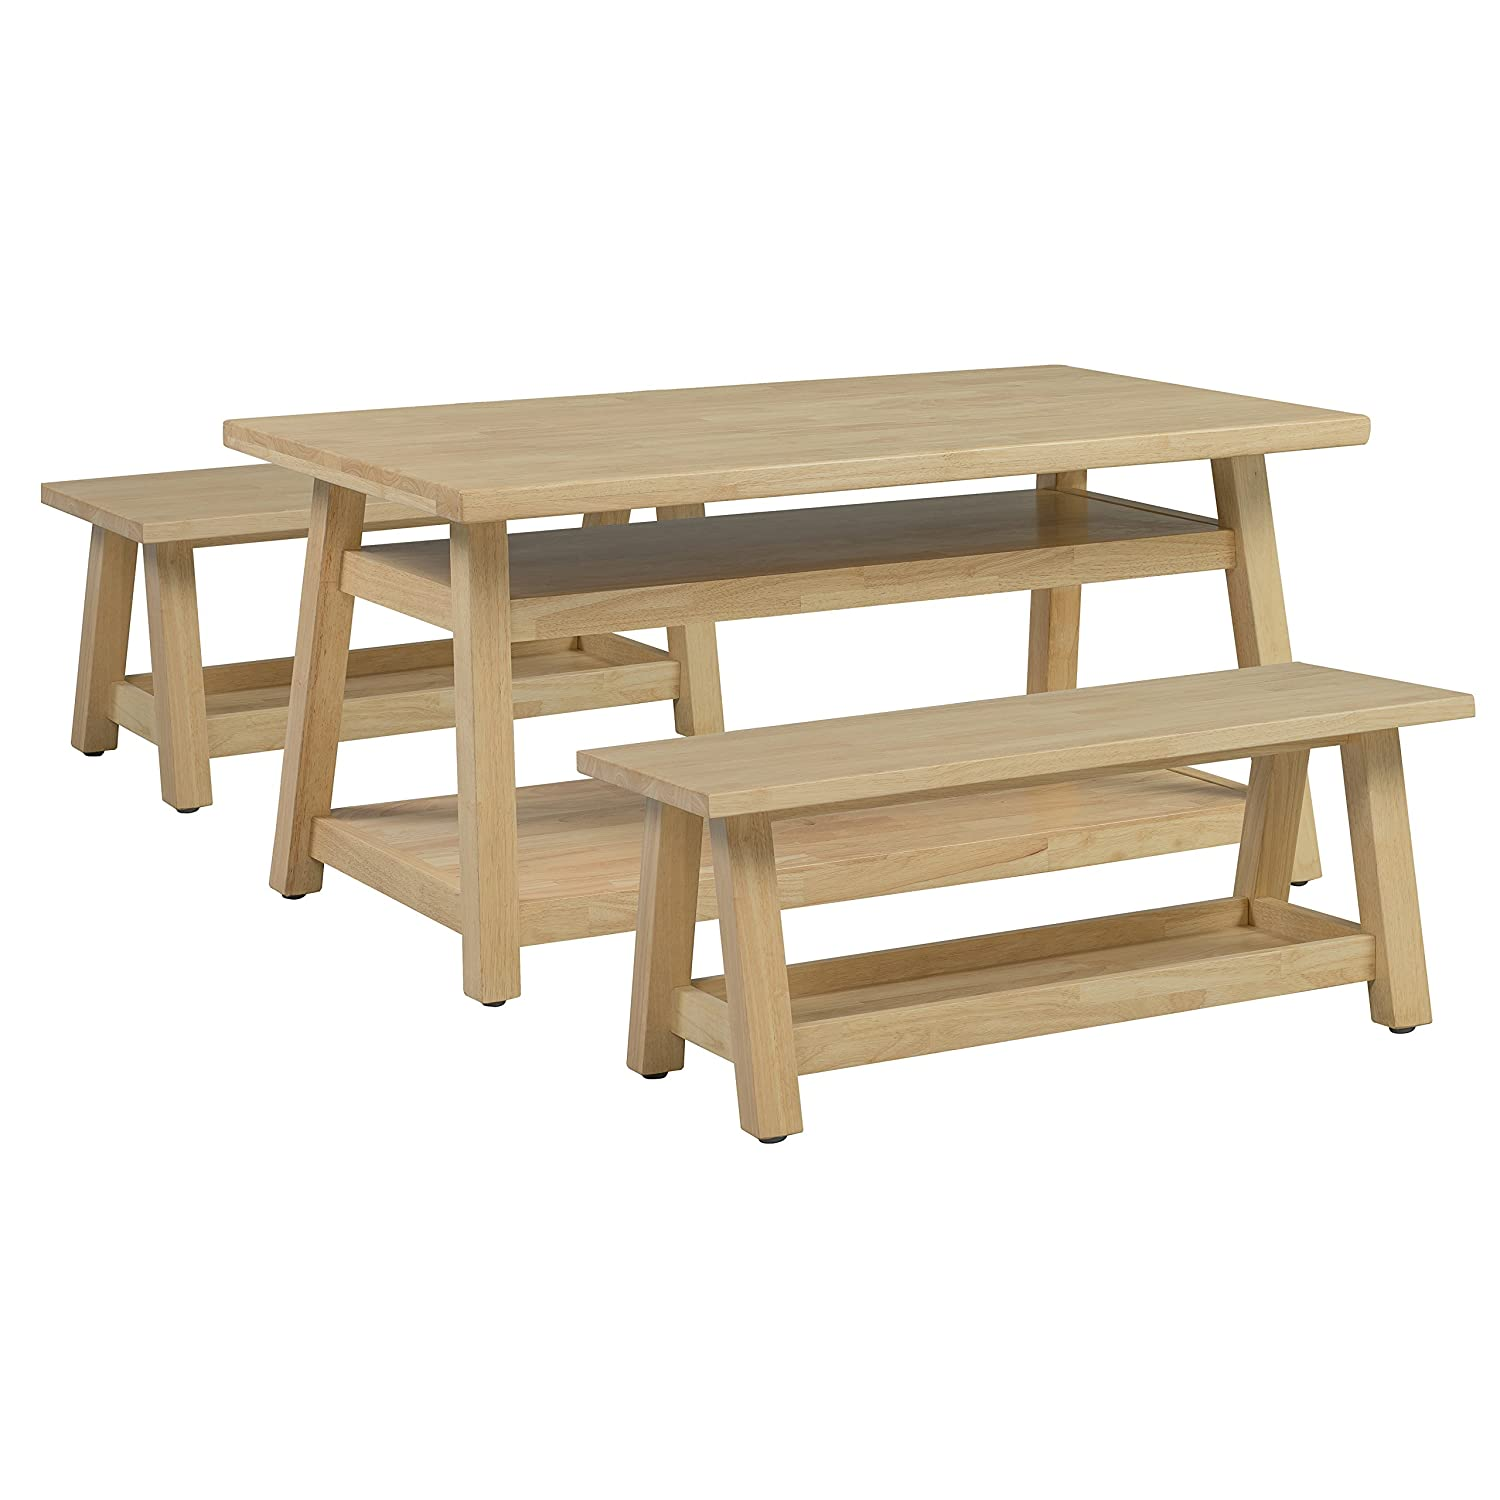 Amazon Com Ecr4kids Sit N Stash Solid Hardwood Table And Bench